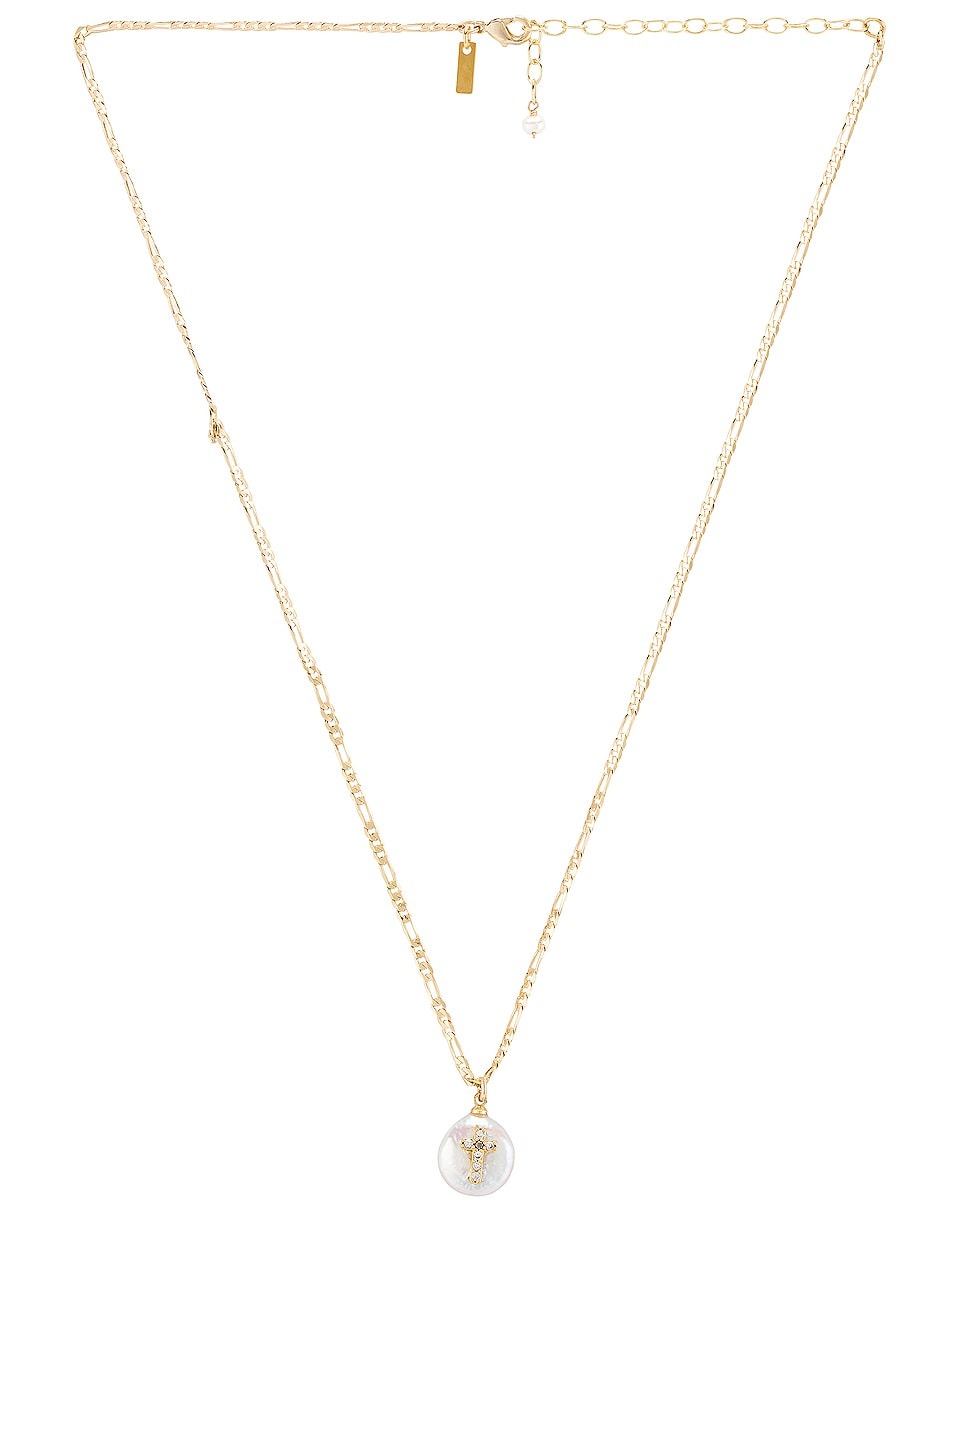 Natalie B Jewelry Pearl of Love Cross Necklace in Gold